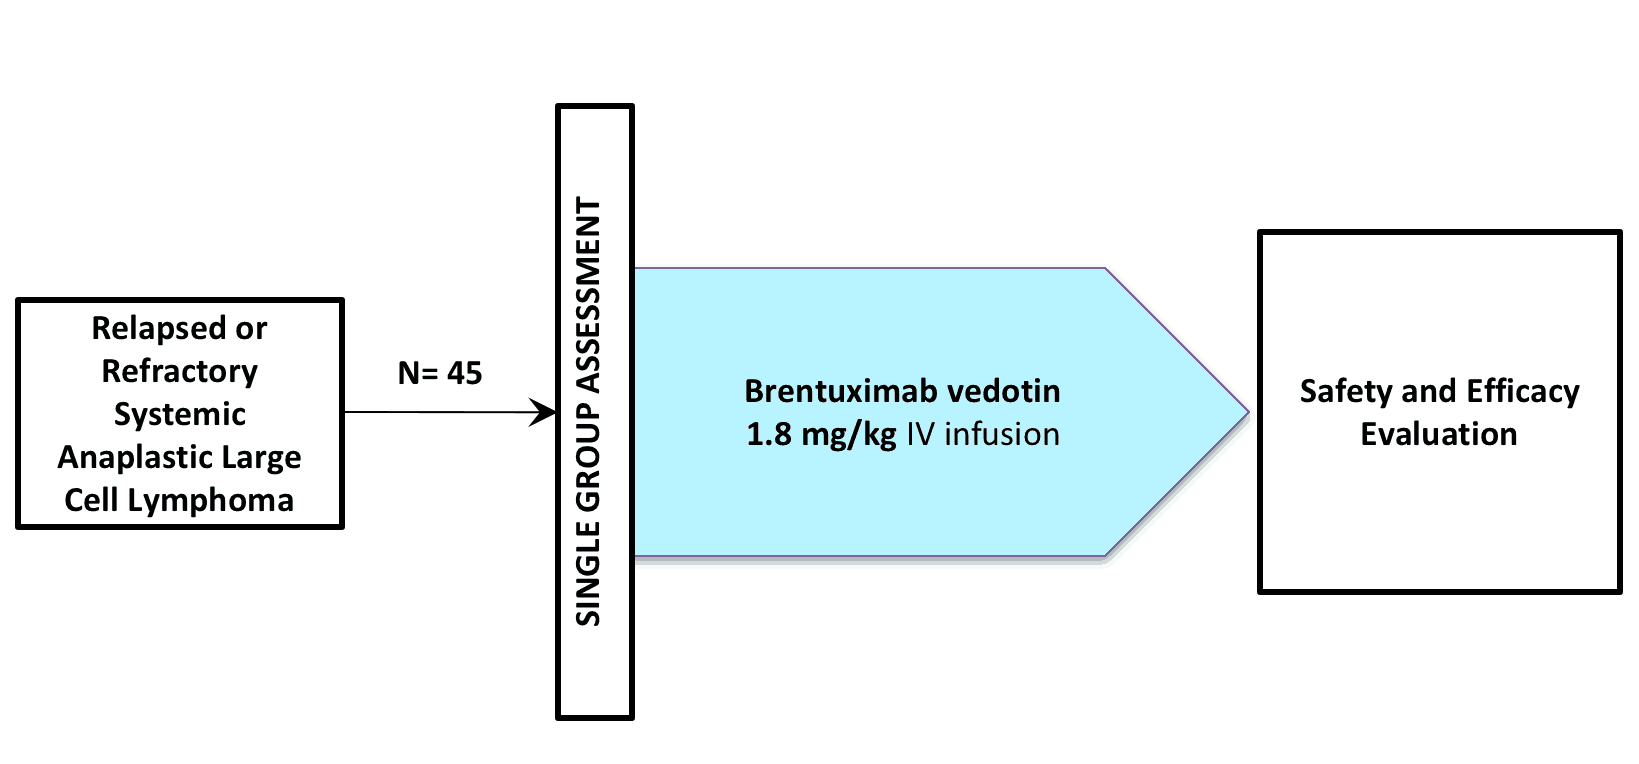 NCT02280785 (CLINICAL TRIAL / BRENTUXIMAB VEDOTIN / SGN-035 / ADCETRIS®)